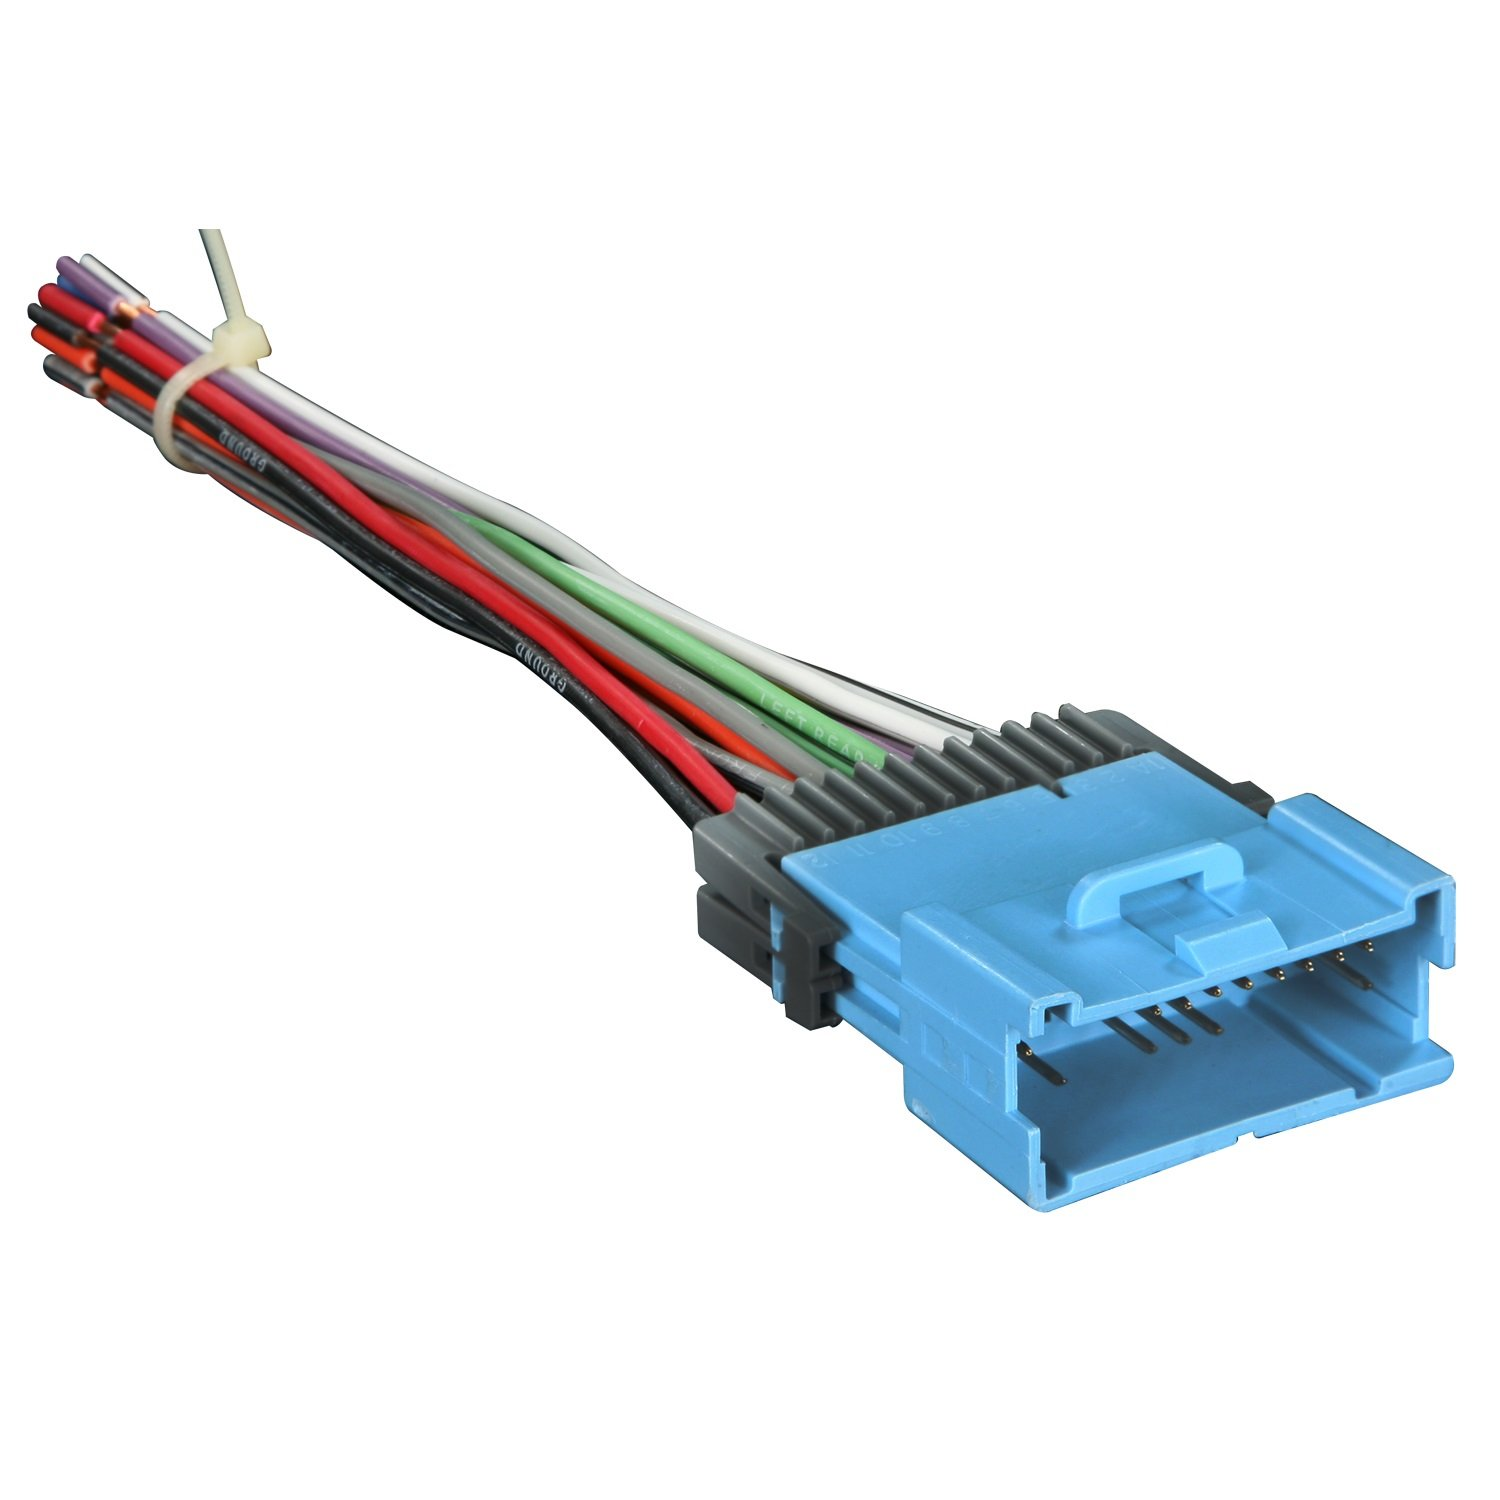 61ruWw 2aJL._SL1500_ amazon com metra 70 2102 radio wiring harness for gm 04 05 car GM Wiring Color Codes at crackthecode.co